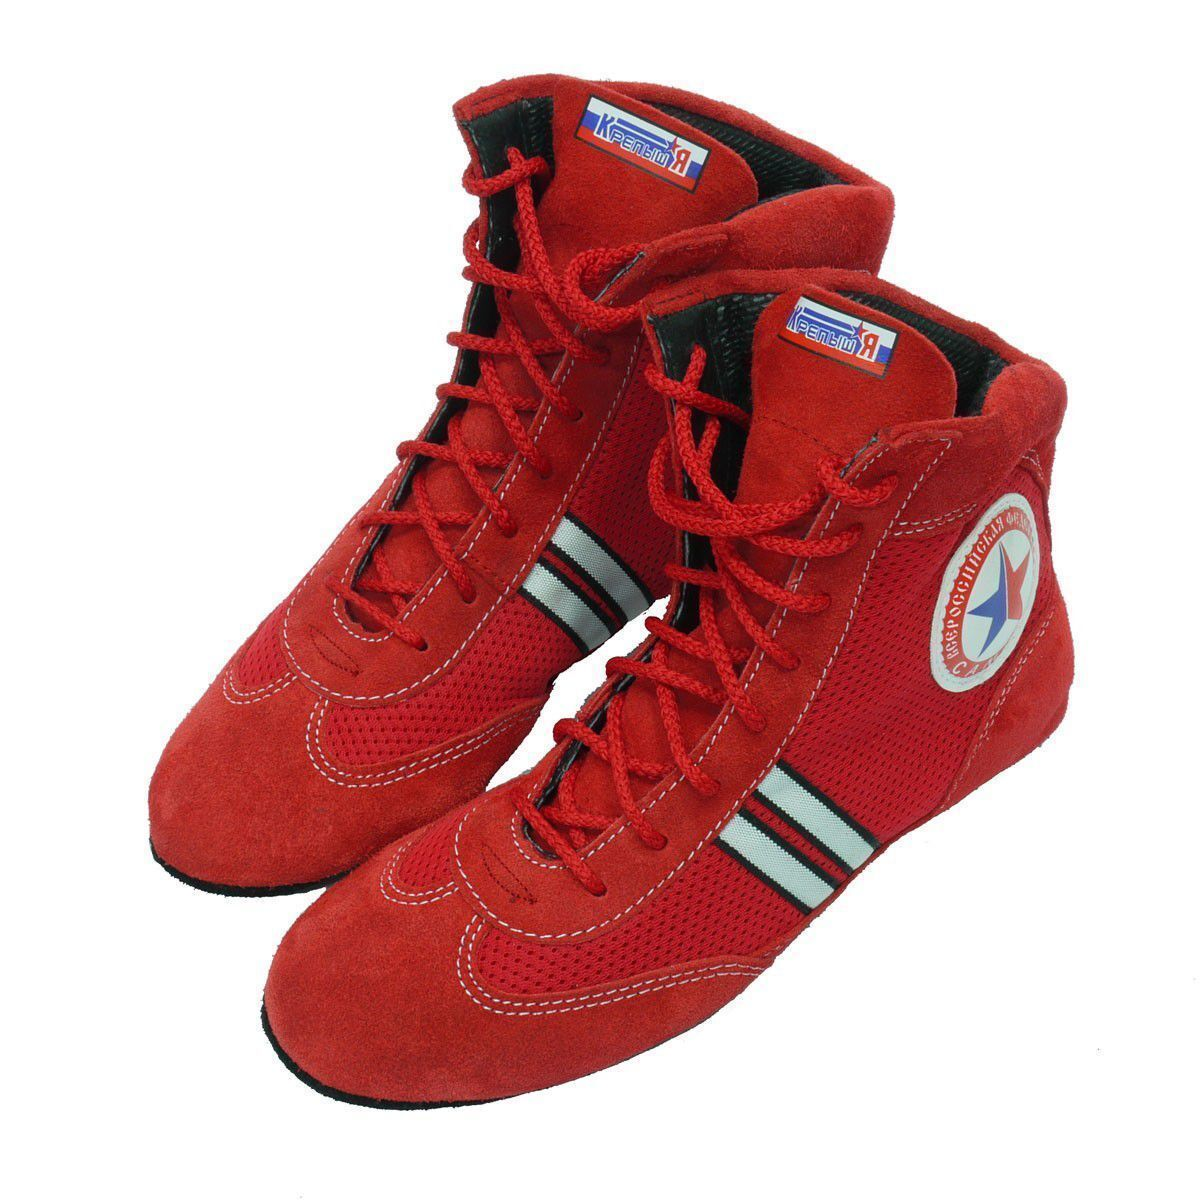 Martial arts footwear. Perfect and durable shoes for mma, sambo any martial arts